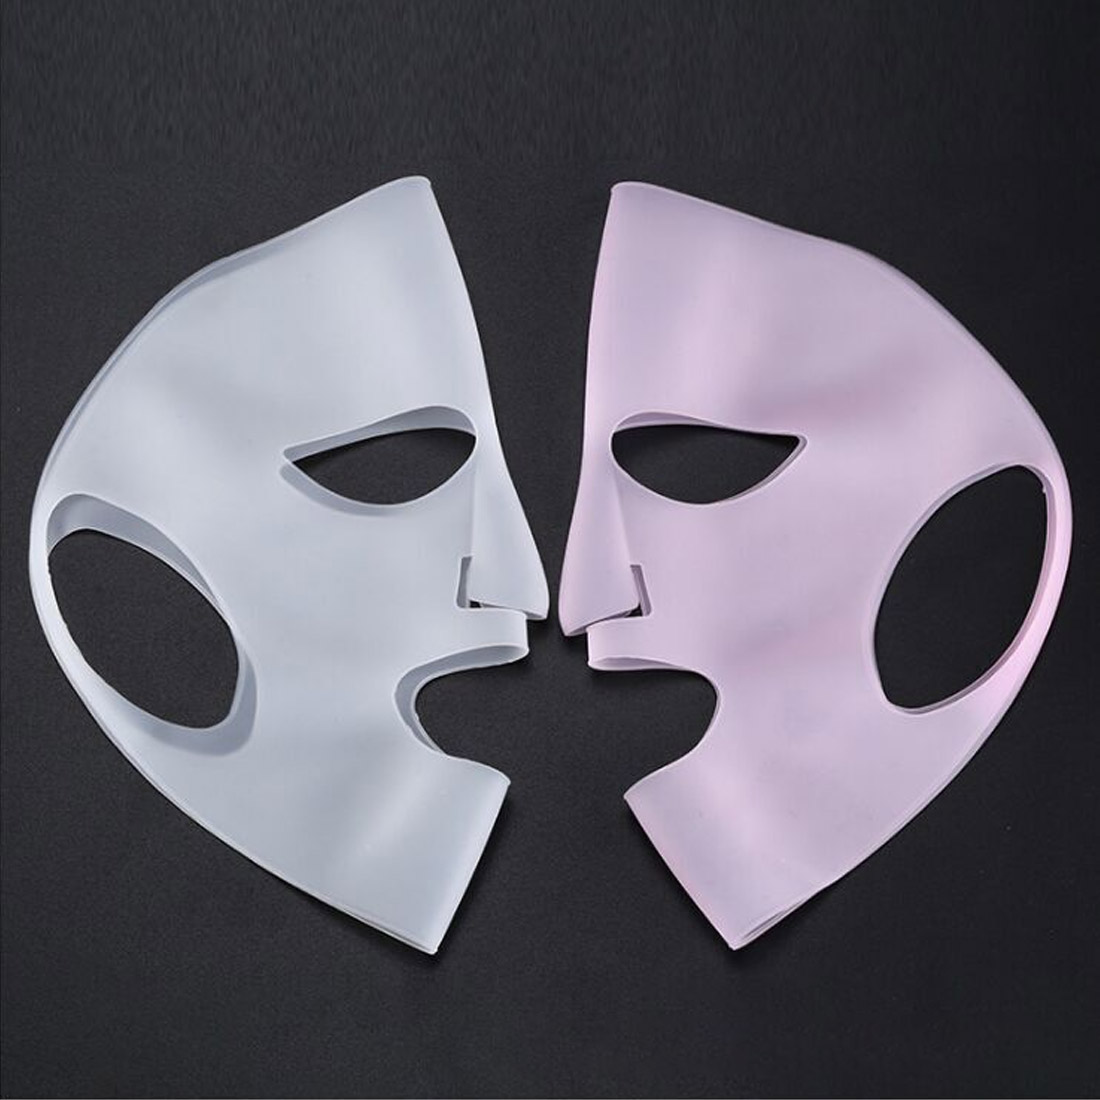 Reusable Grace Face Mask Cover Holder For Face Mask Steam Prevents Evaporation Moisturizing Control Blackhead Remover